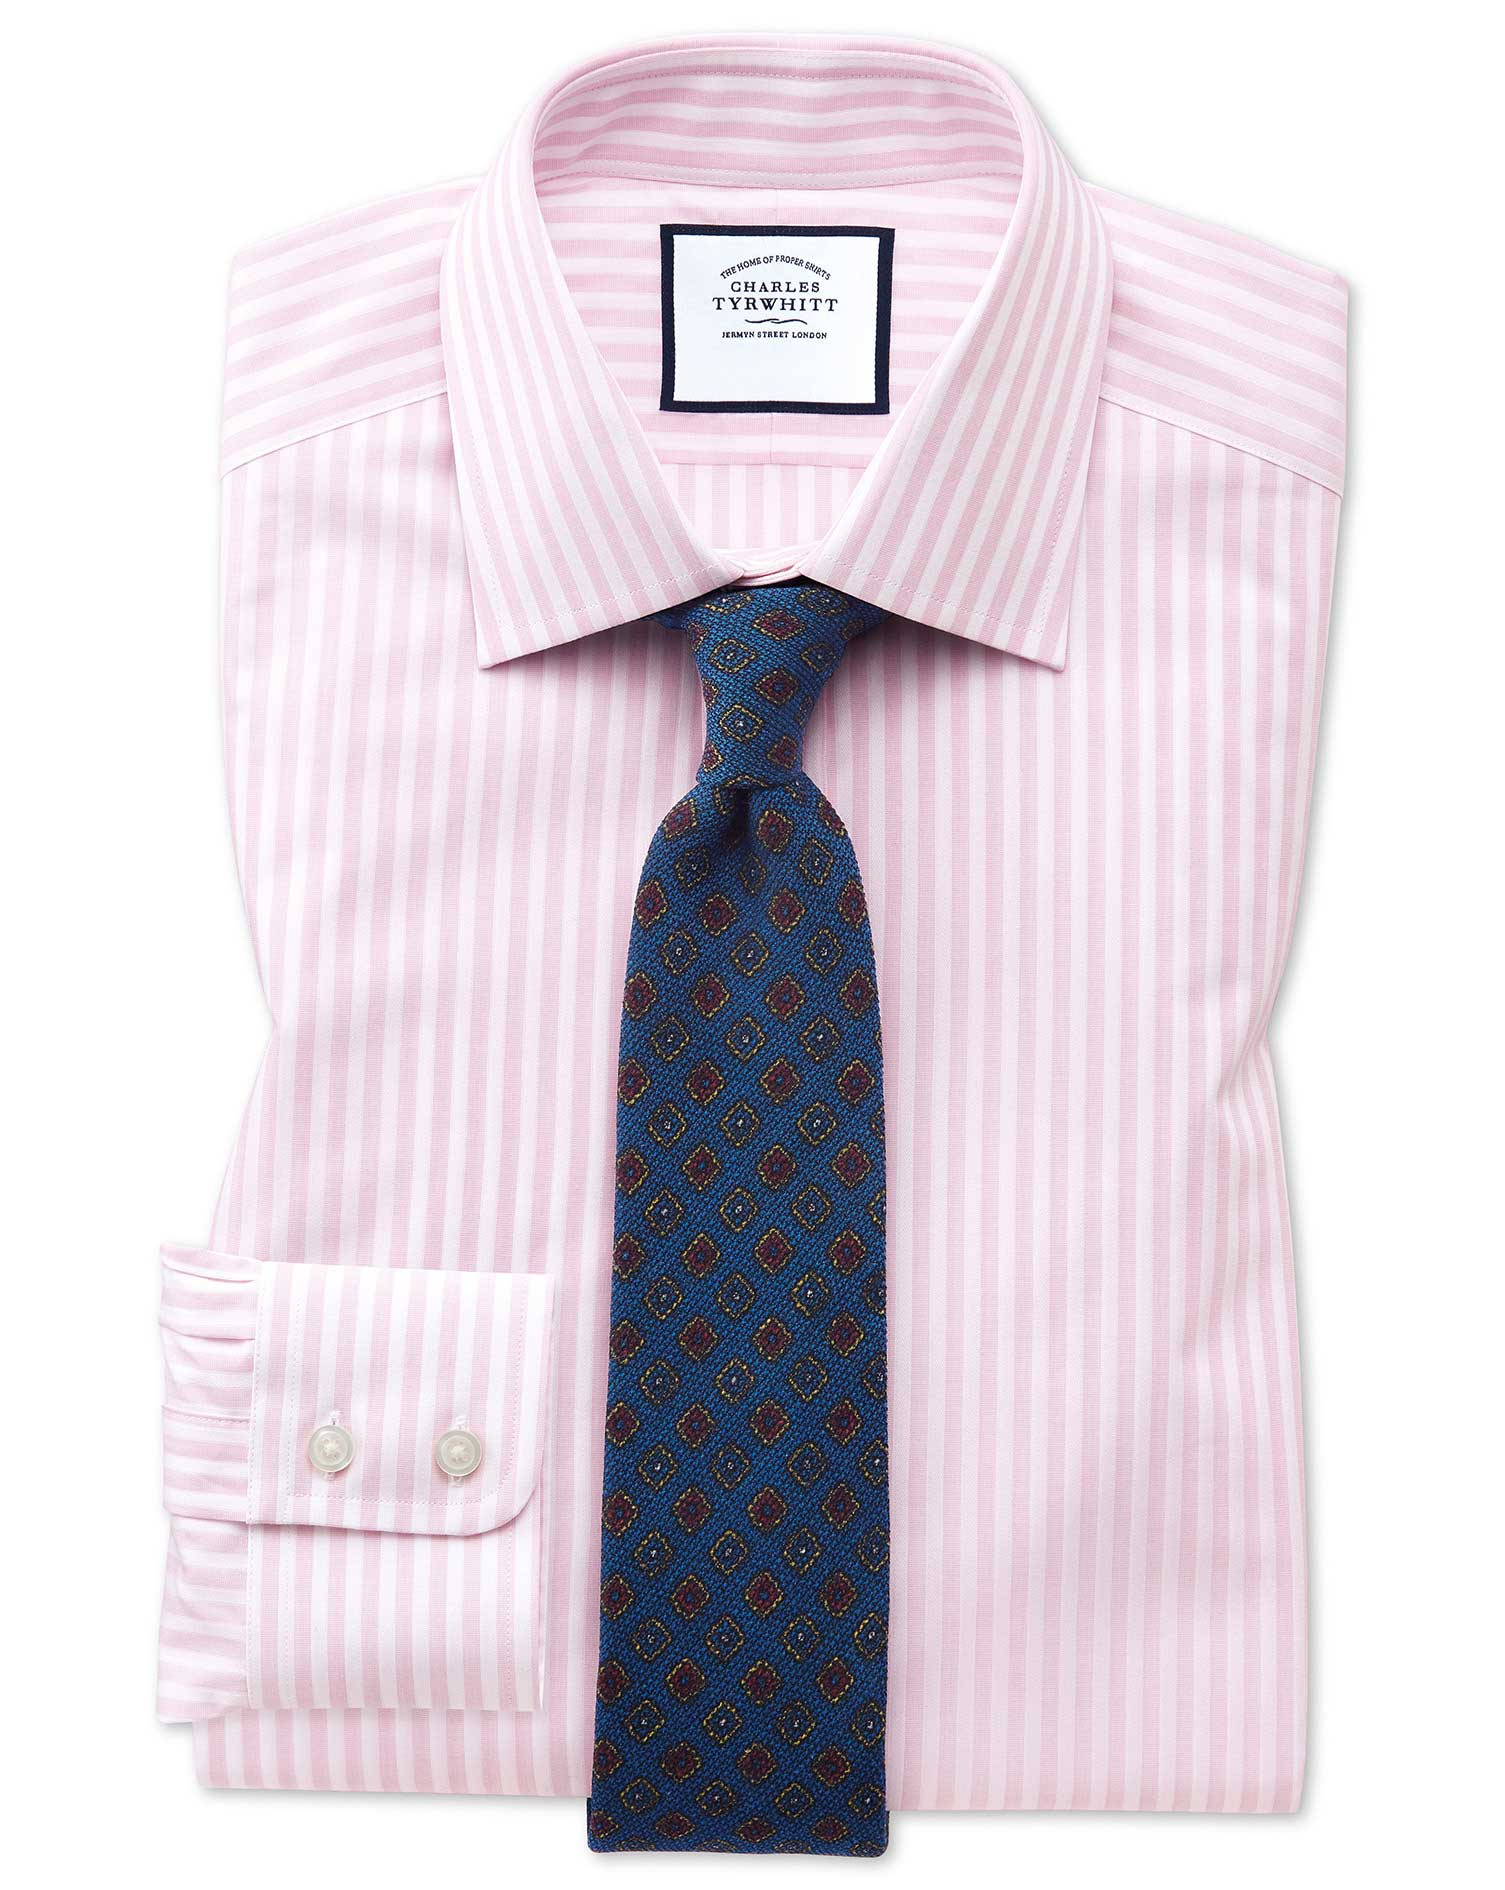 Slim Fit Pink and White Dobby Textured Stripe Cotton Formal Shirt Single Cuff Size 16/34 by Charles